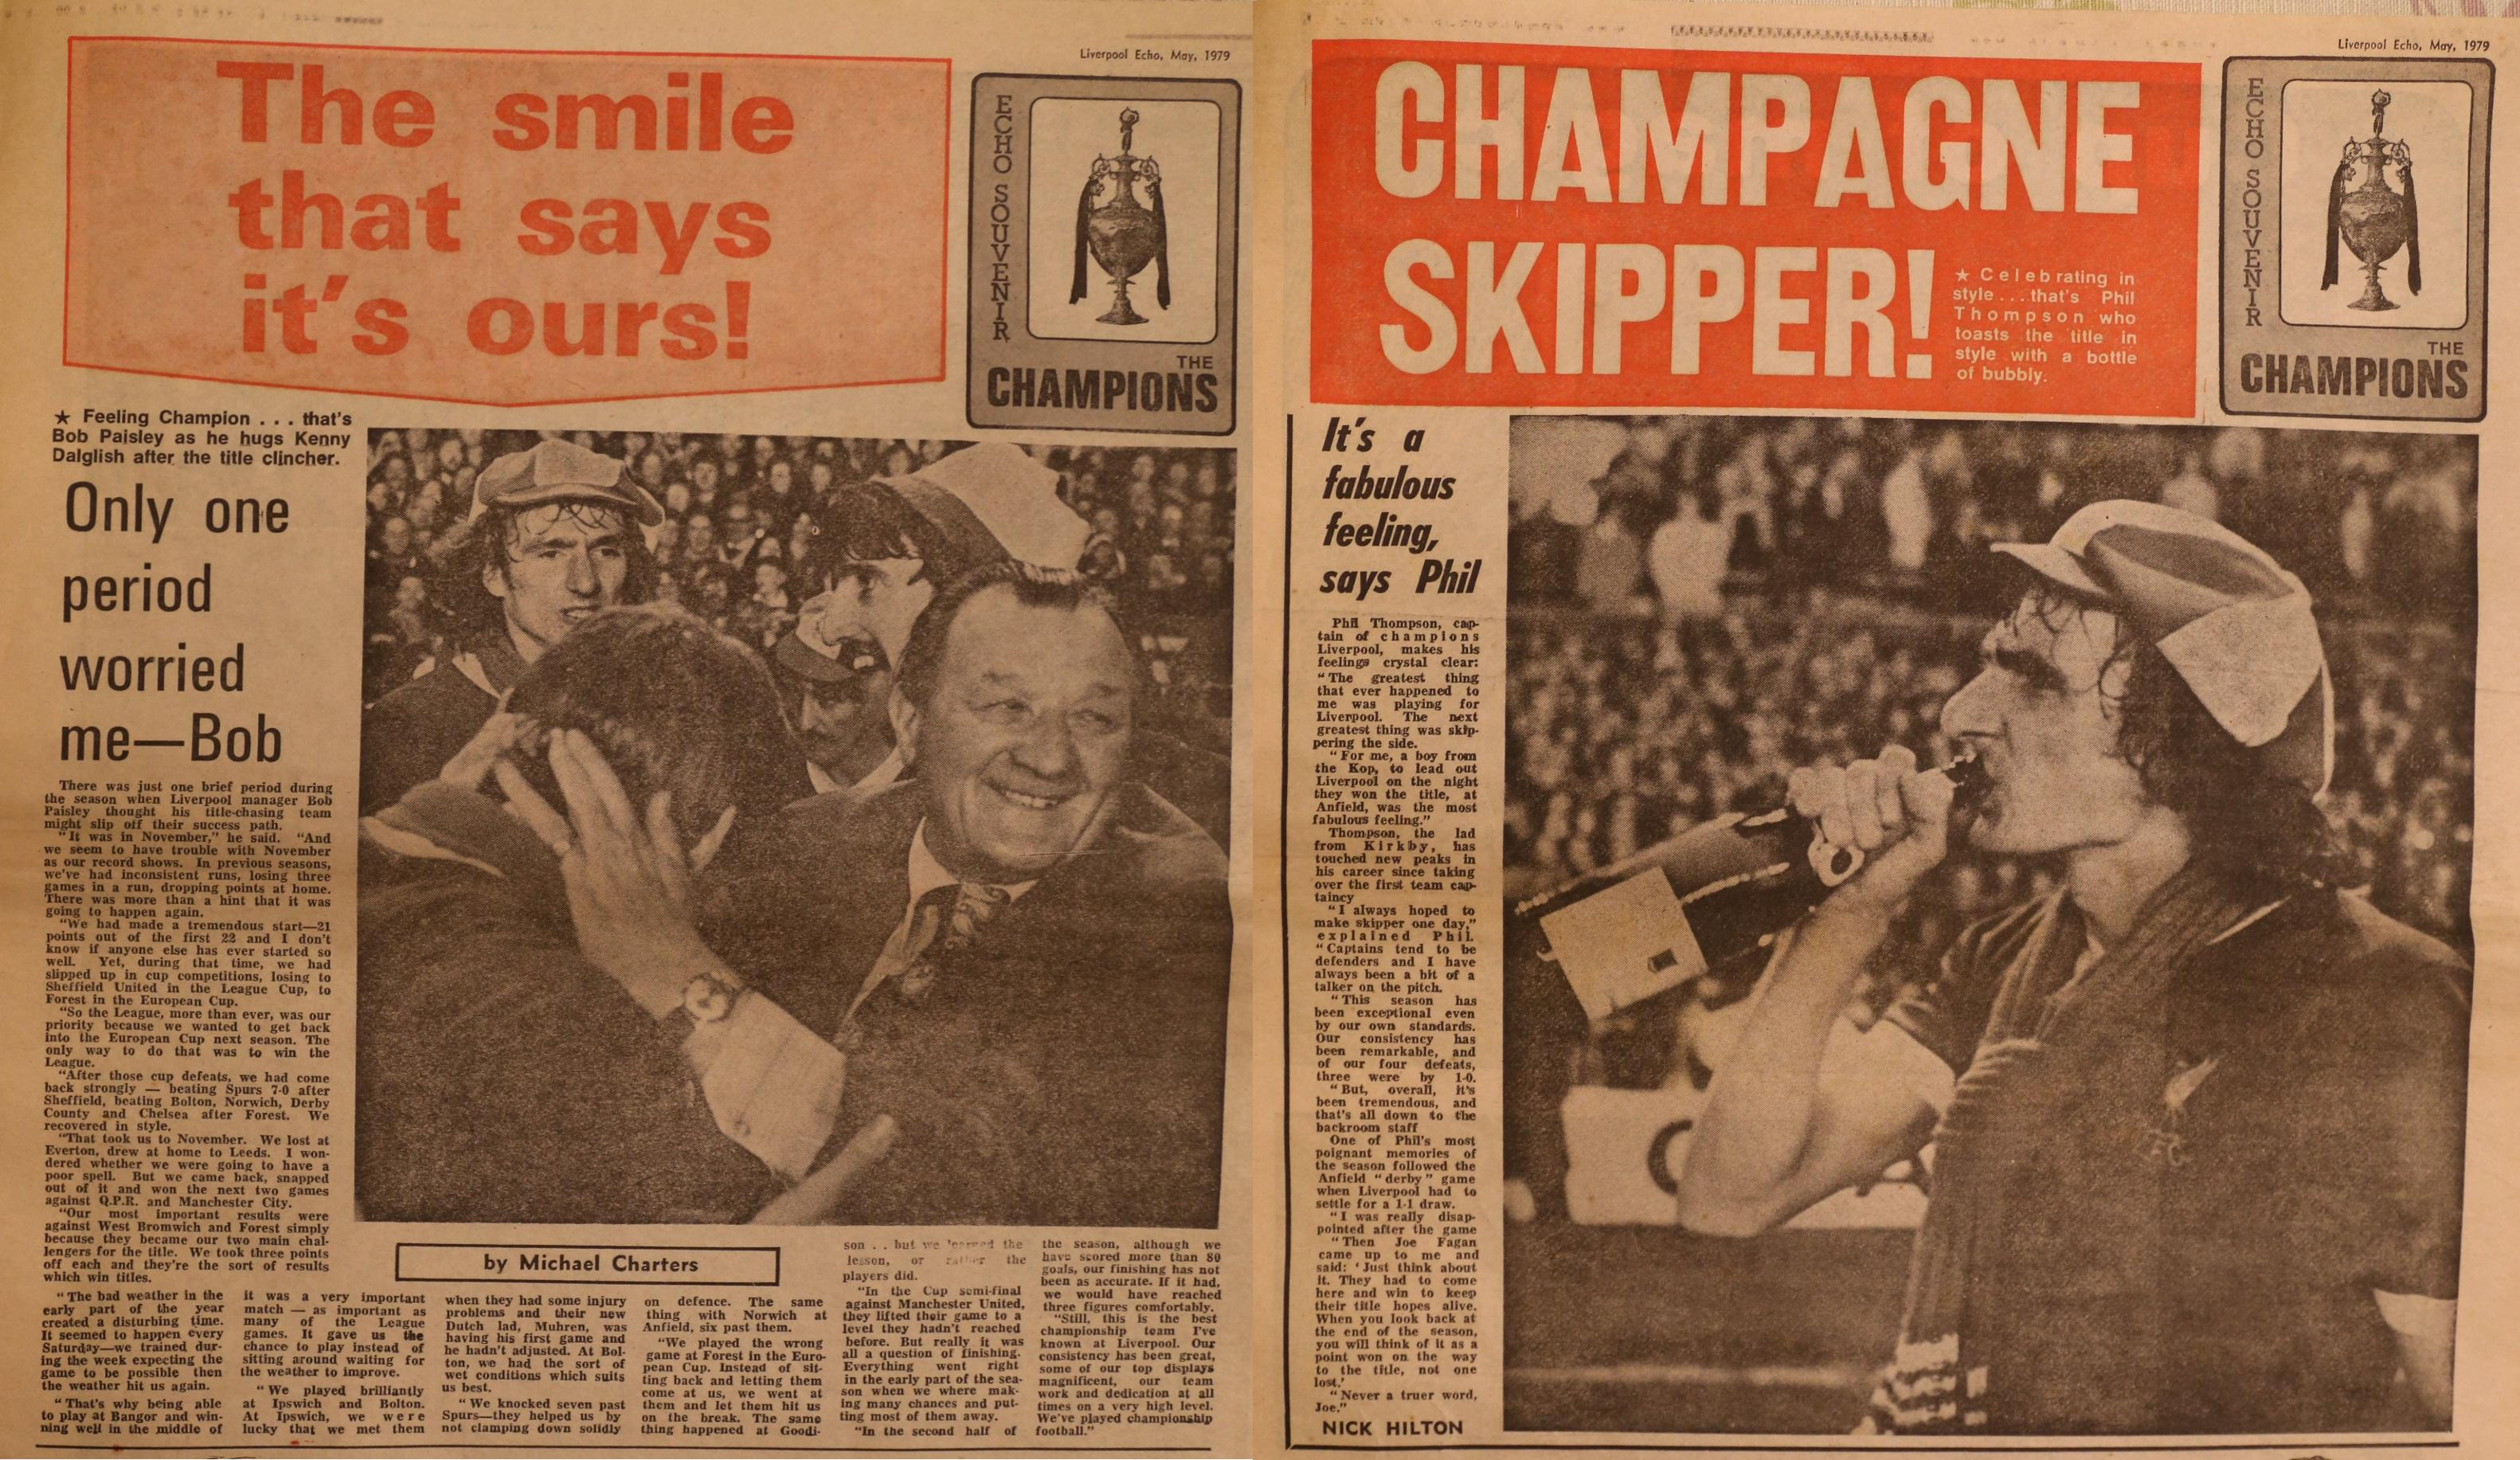 Champagne skipper! - 8 May 1979